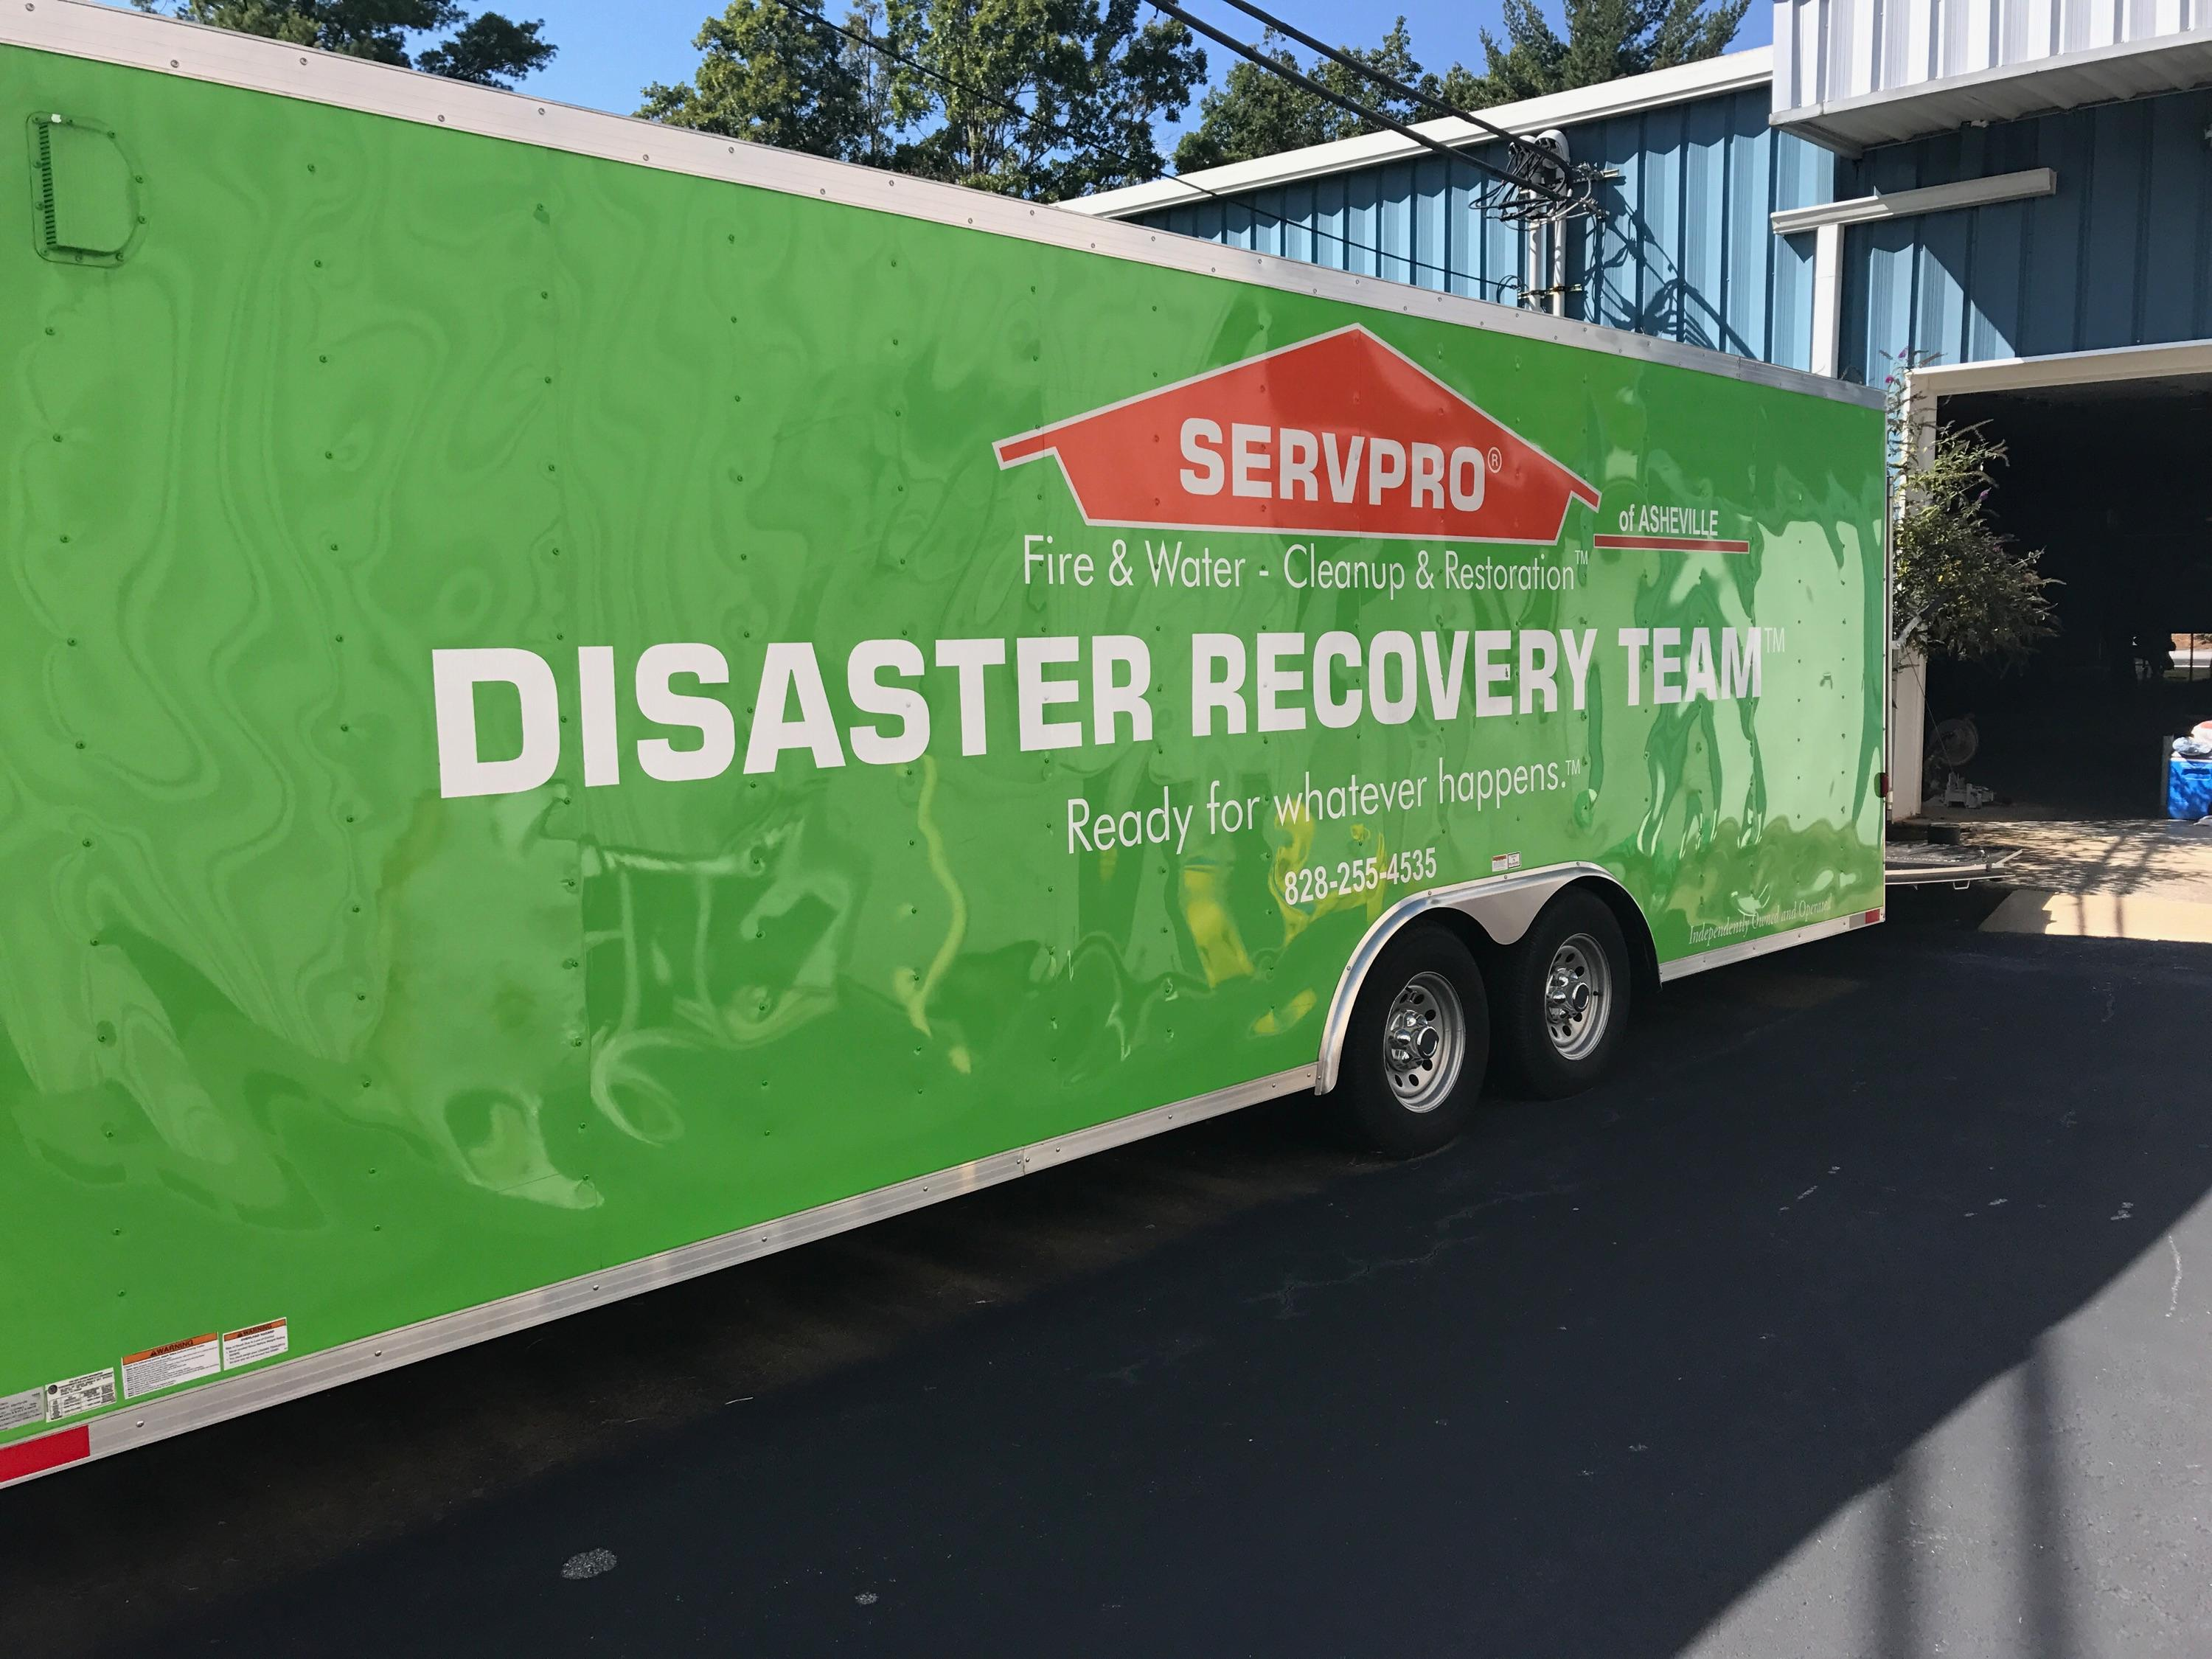 Our Disaster Recovery Team is always ready to head out when disaster strikes. When you need help, count on SERVPRO!